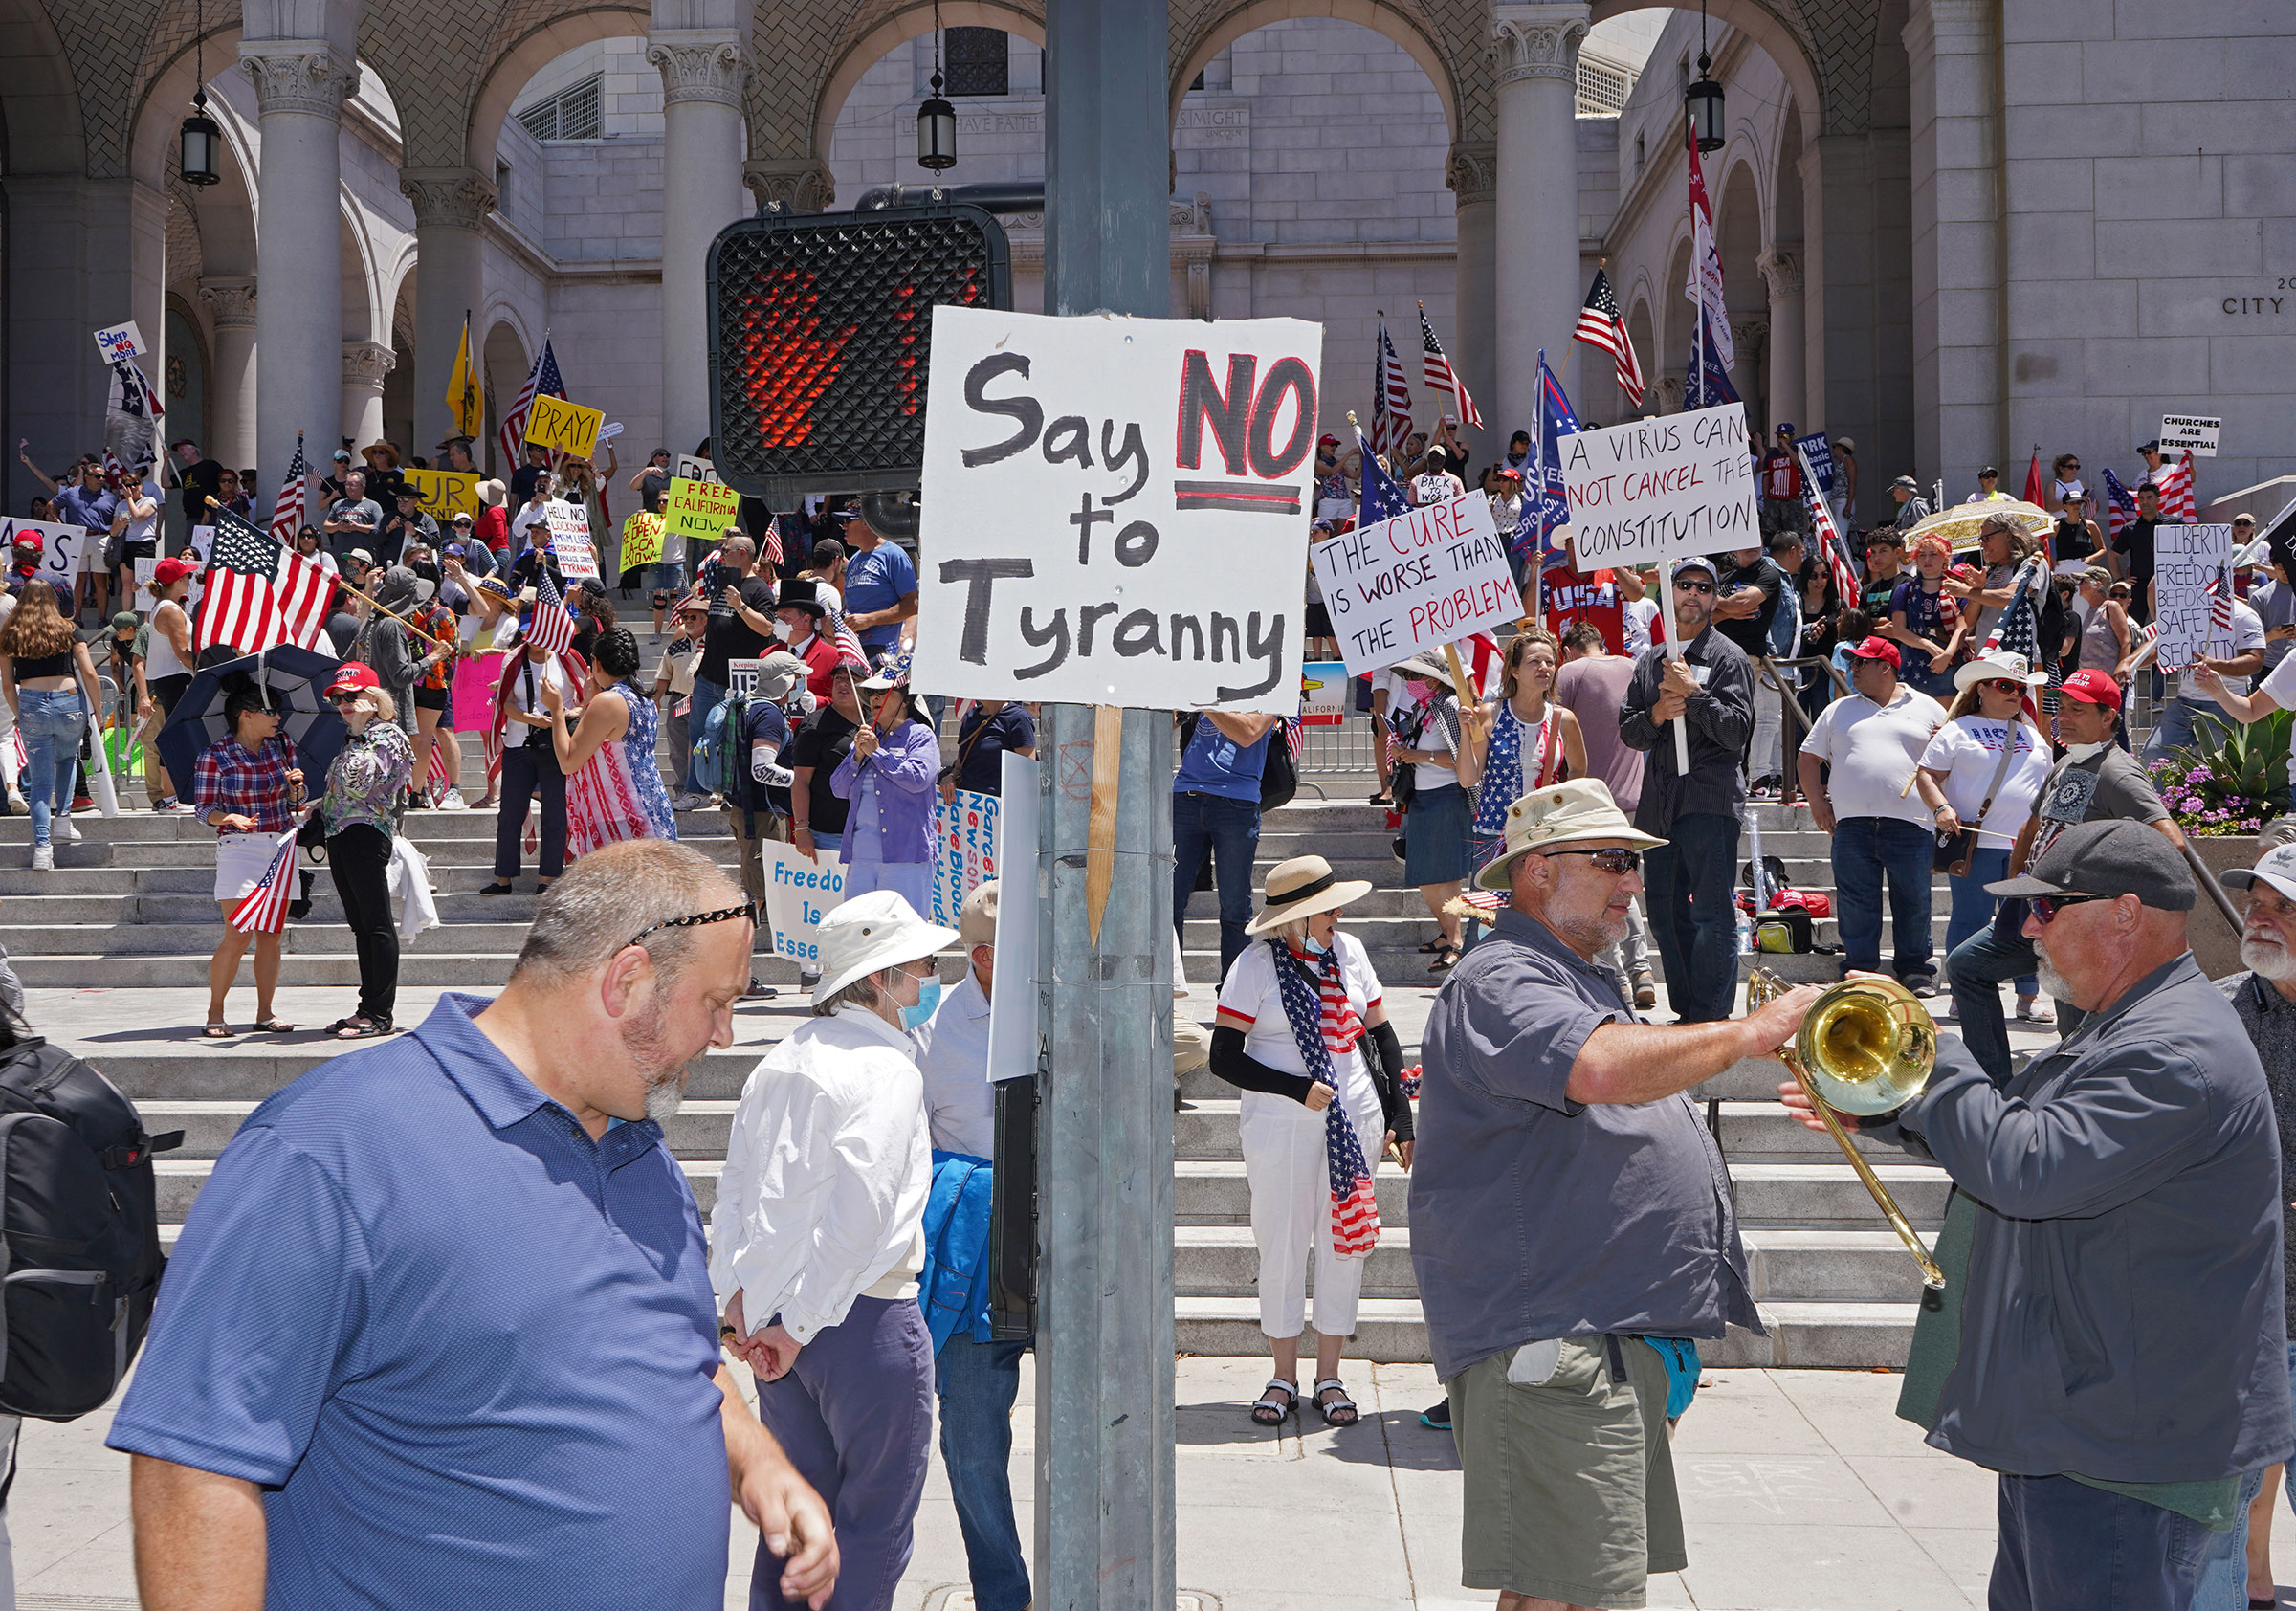 Protesters calling for a reopening of California from coronavirus lockdown measures and restrictions in front of City Hall in Los Angeles, May 24, 2020.